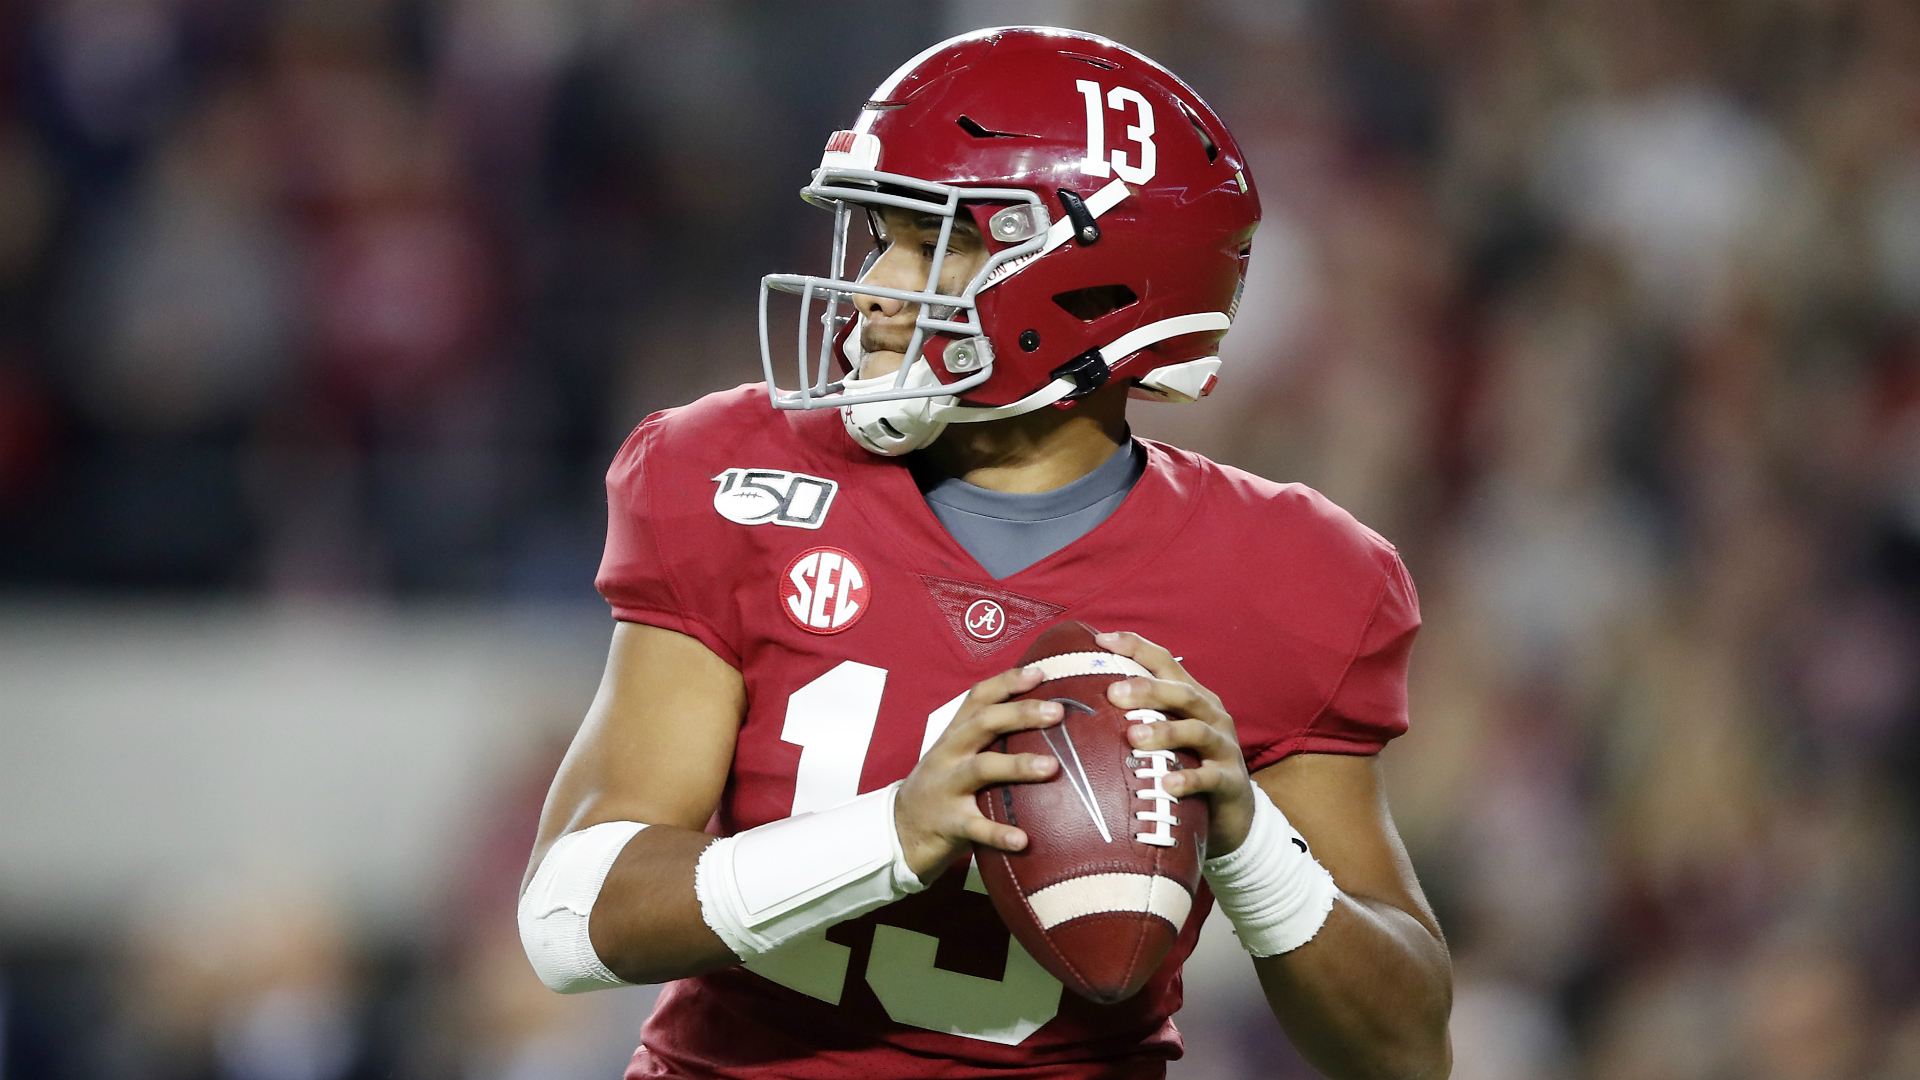 Alabama's Tua Tagovailoa undecided on 2020 NFL Draft: 'This isn't something I can rush'